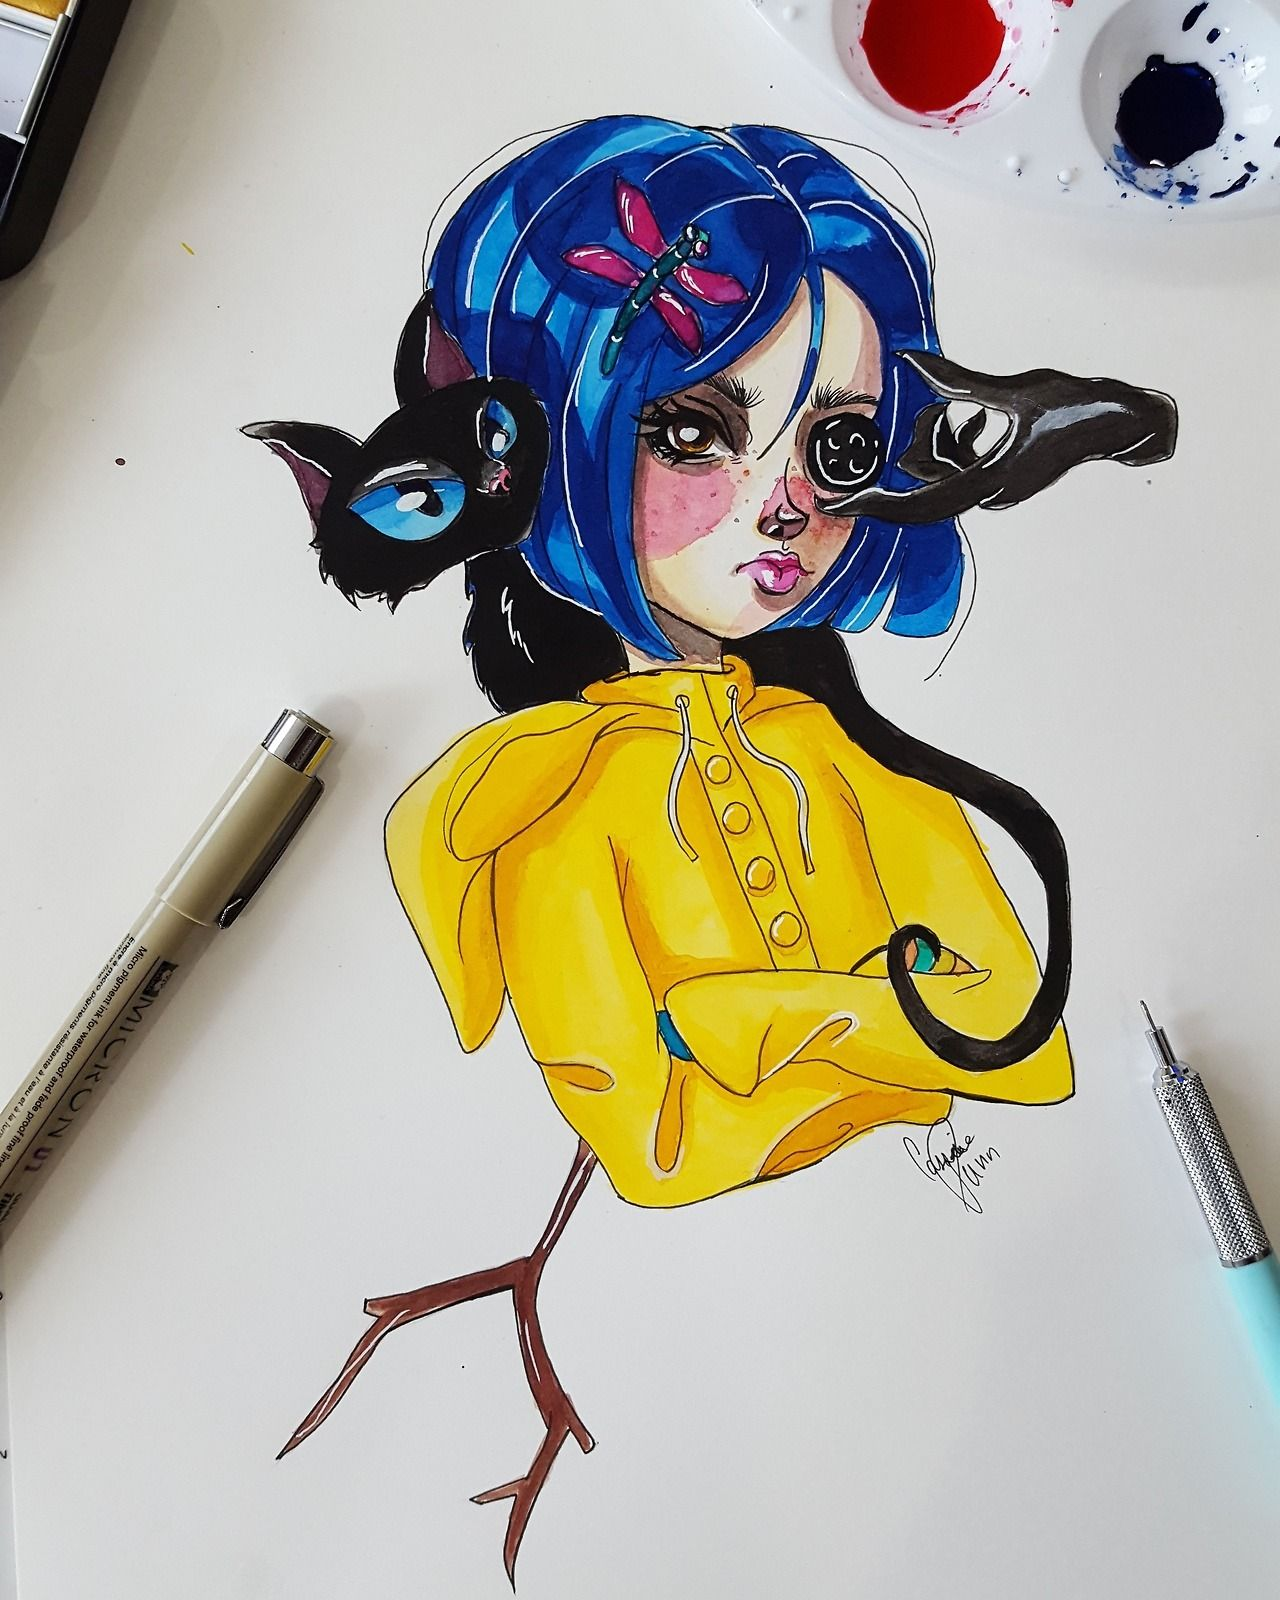 Deceiverofgods Makin Up A Song About Coraline She S A Peach She S A Doll She S A Pal Of Mine She S As Cute As A Bu Coraline Drawing Coraline Art Coraline